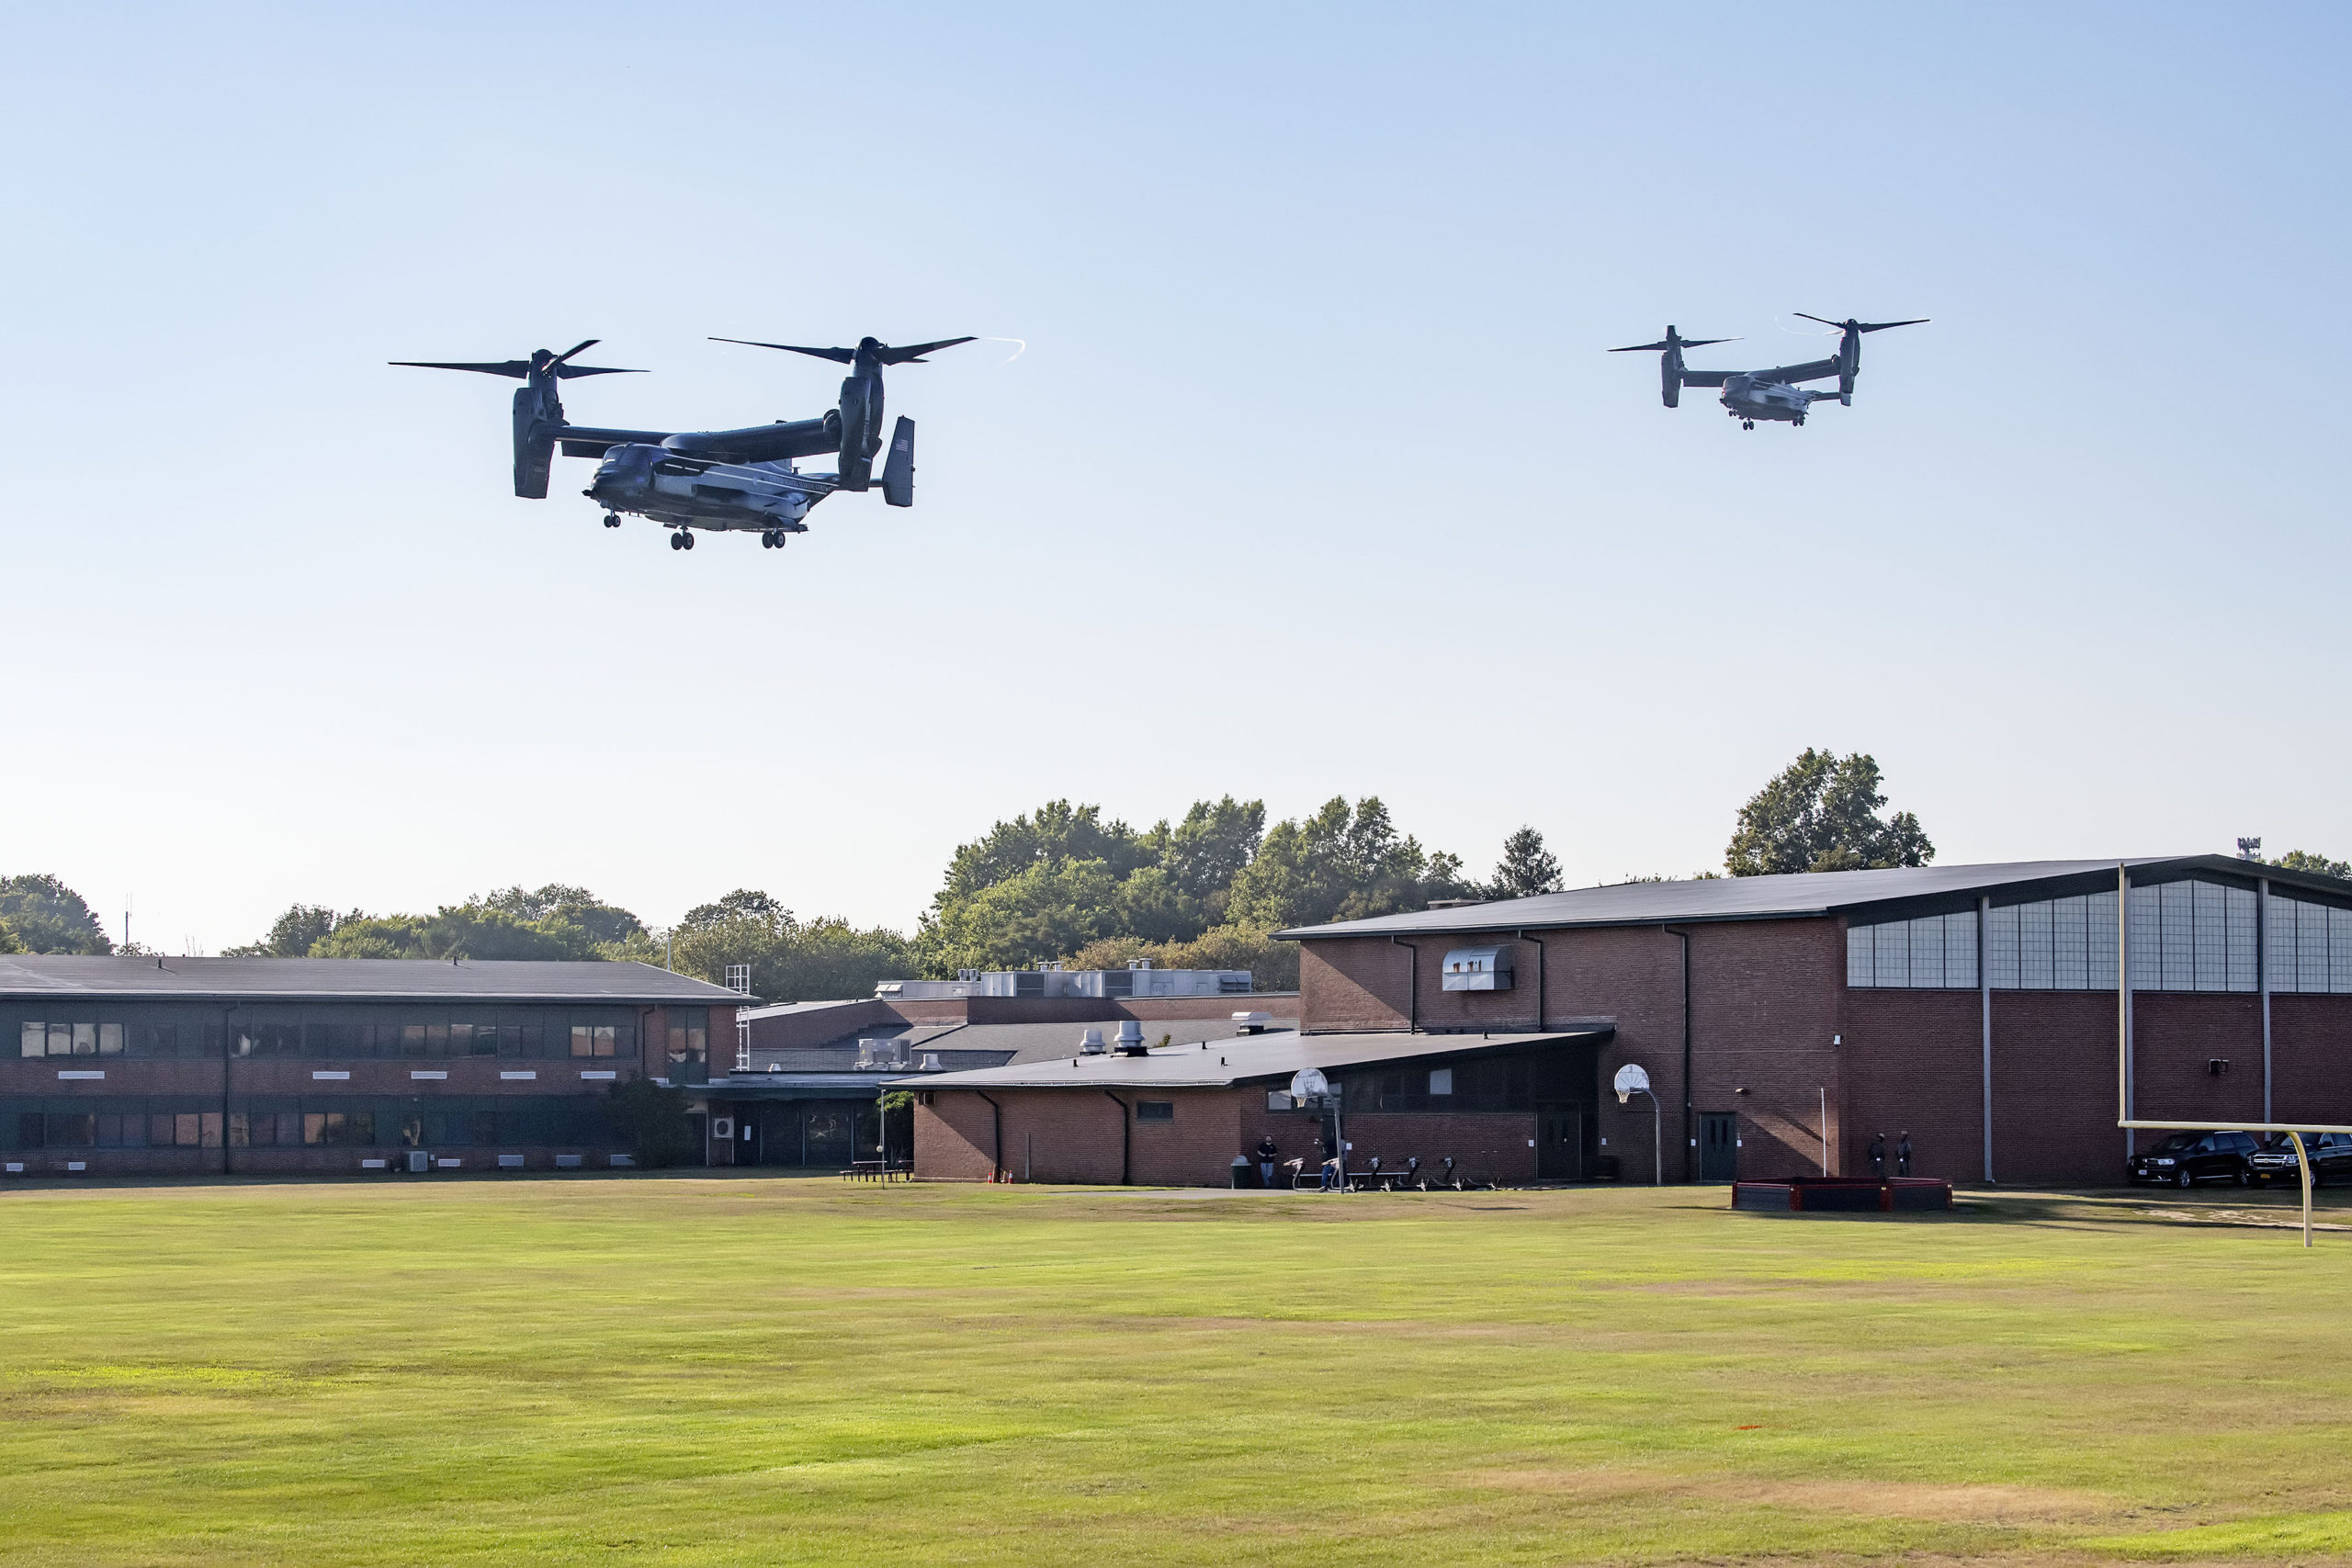 The V-22 Osprey aircraft were the first to arrive at Southampton High School on Saturday.